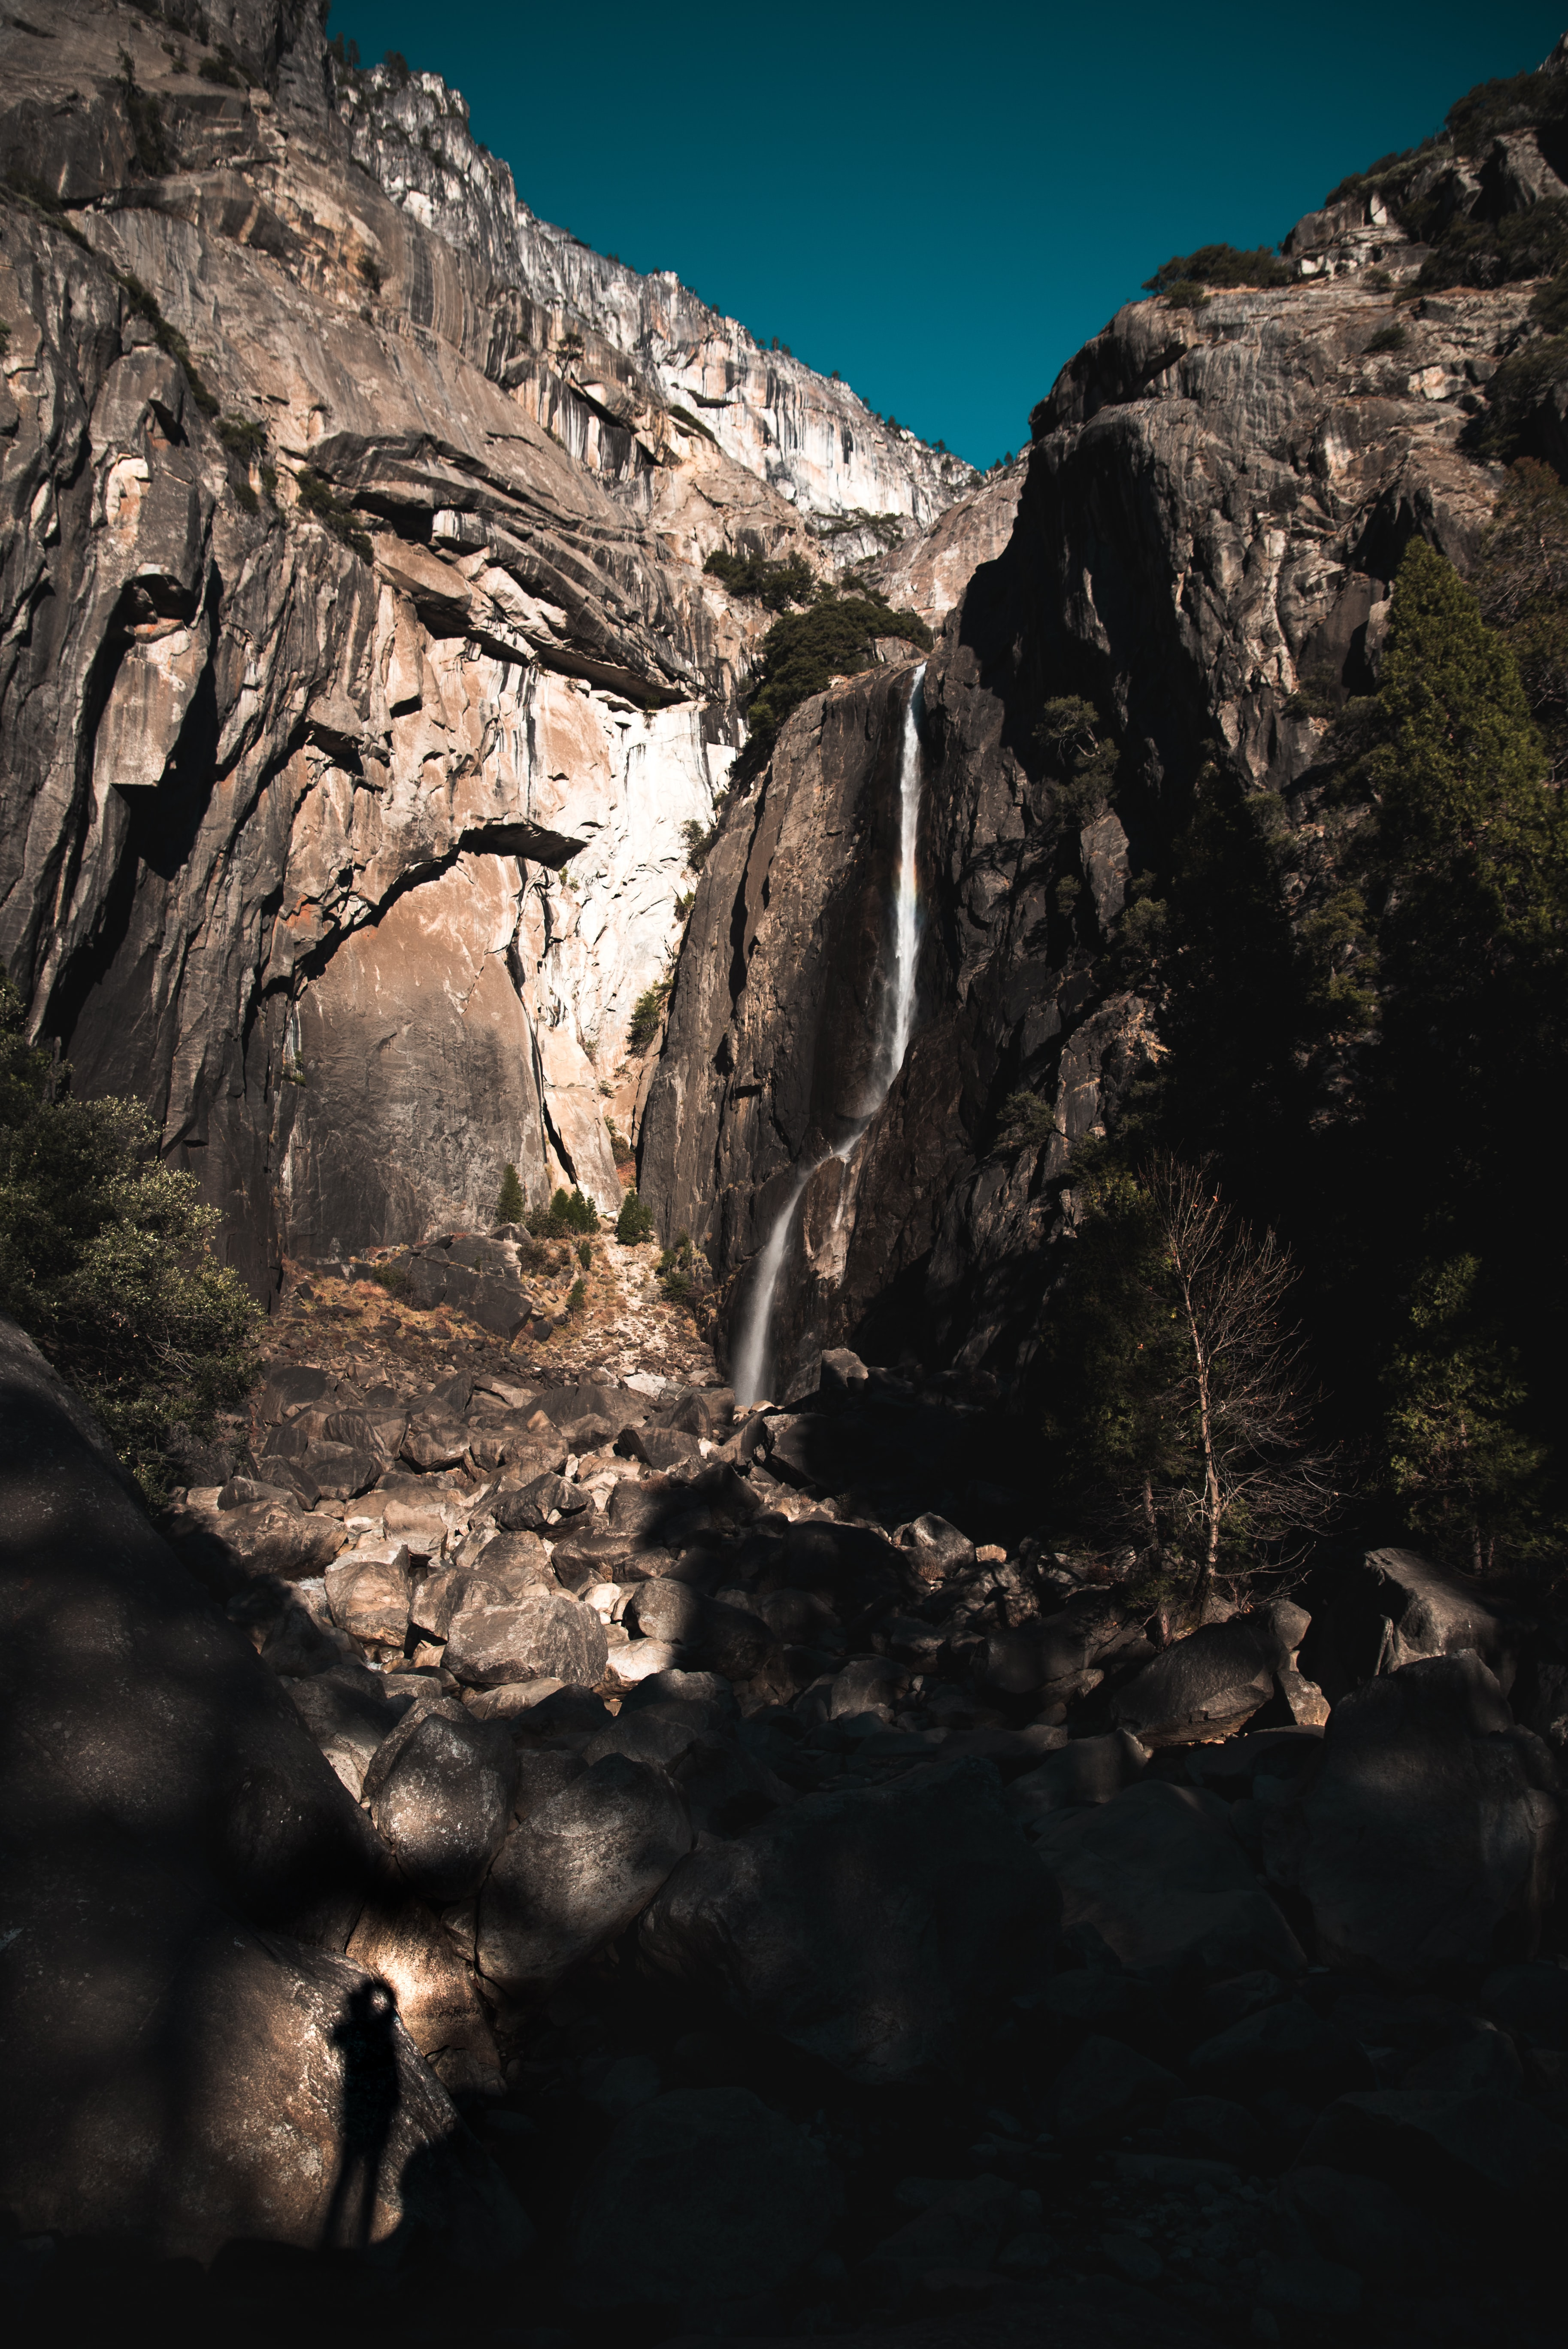 waterfalls surrounded with rock mountain under blue sky during daytime